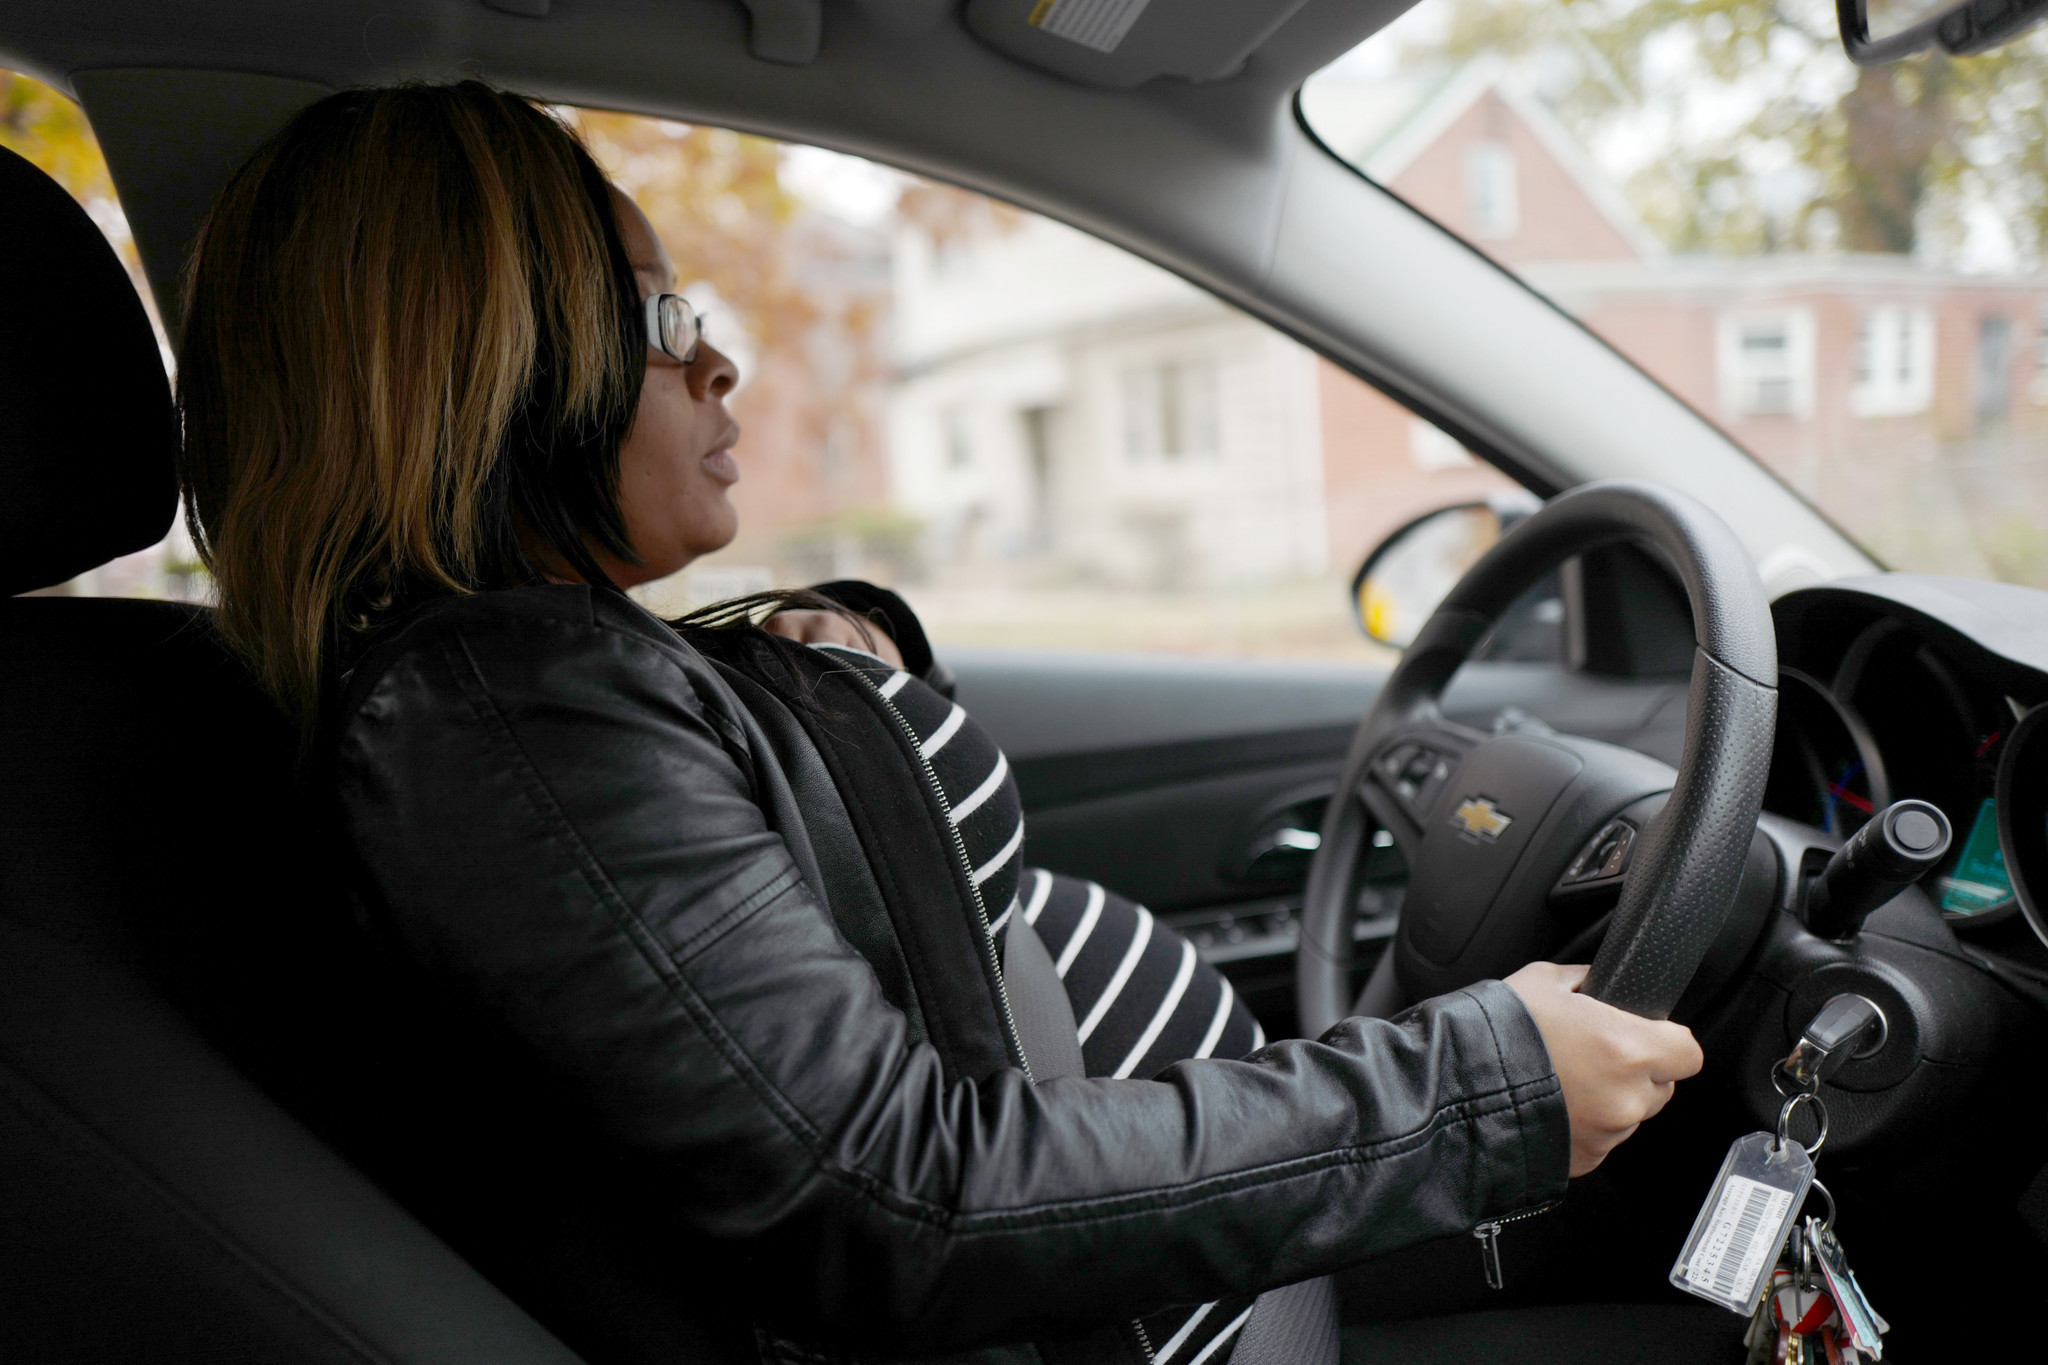 First Time Driver >> She was pregnant and broke. Signing up for Uber drove her into debt. - Chicago Tribune